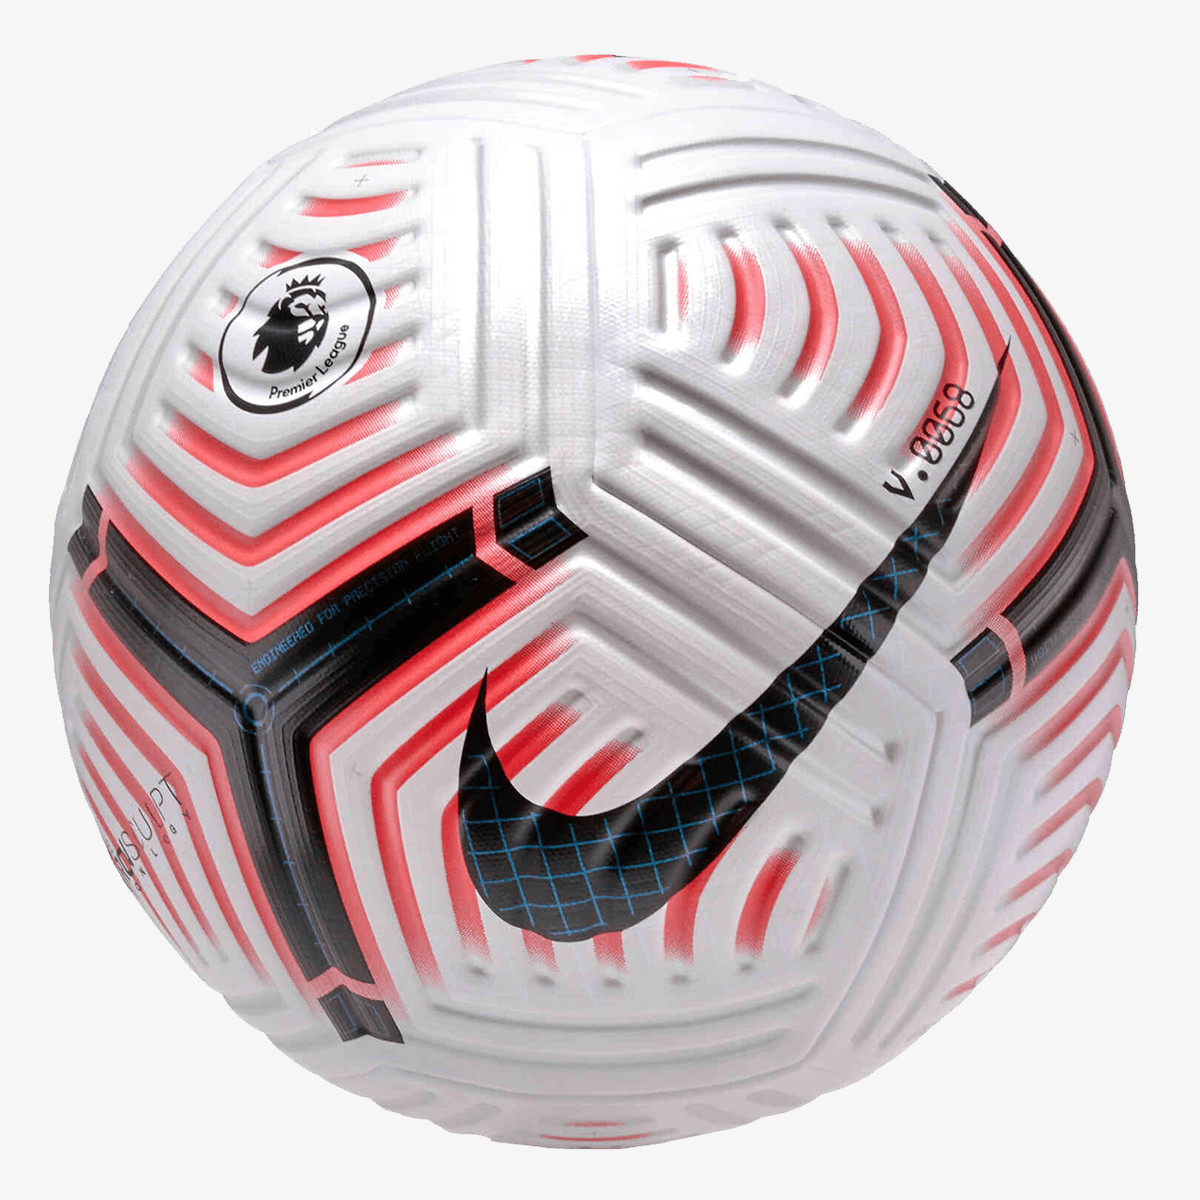 NIKE FLIGHT PL OFFICIAL MATCH BALL